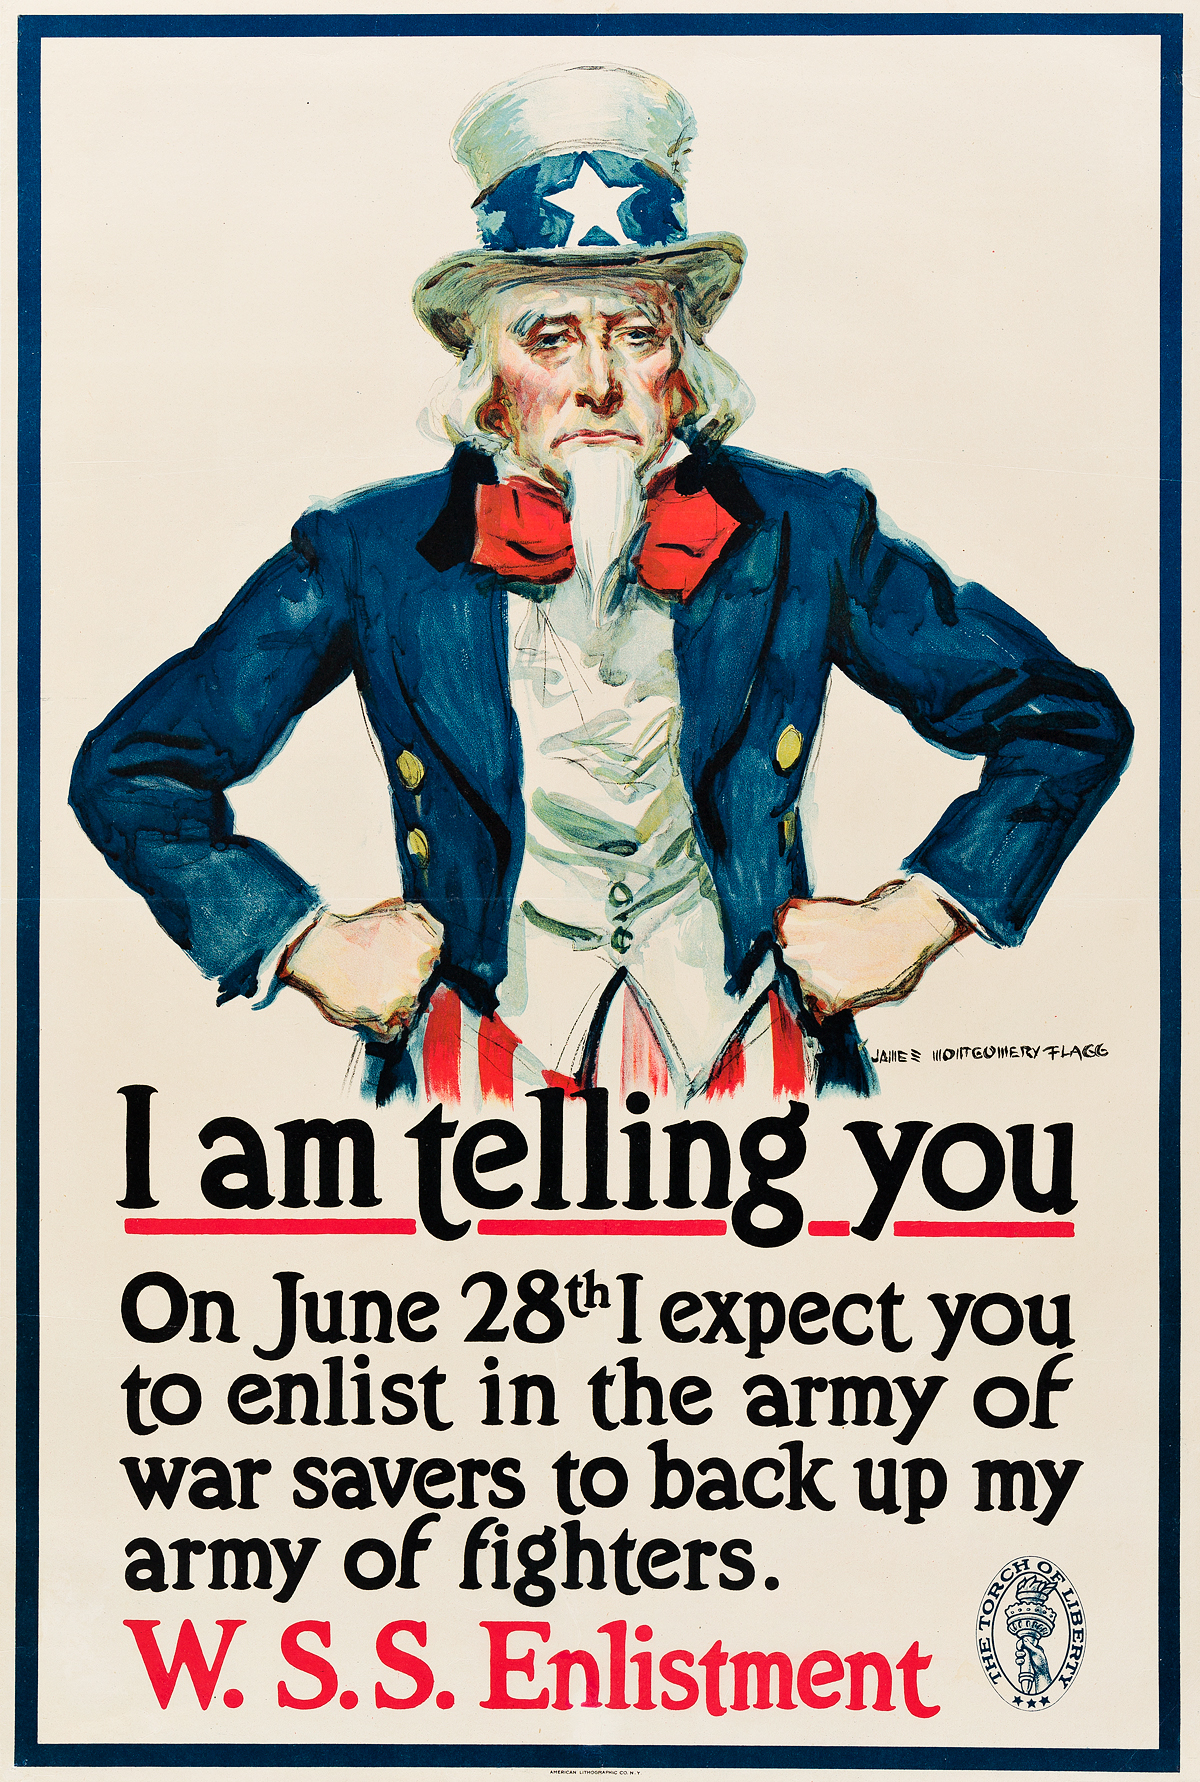 HOWARD-CHANDLER-CHRISTY-(1873-1952)--JAMES-MONTGOMERY-FLAGG-(1870-1960)-[WORLD-WAR-I]-Group-of-5-posters-1917-1918-Sizes-vary